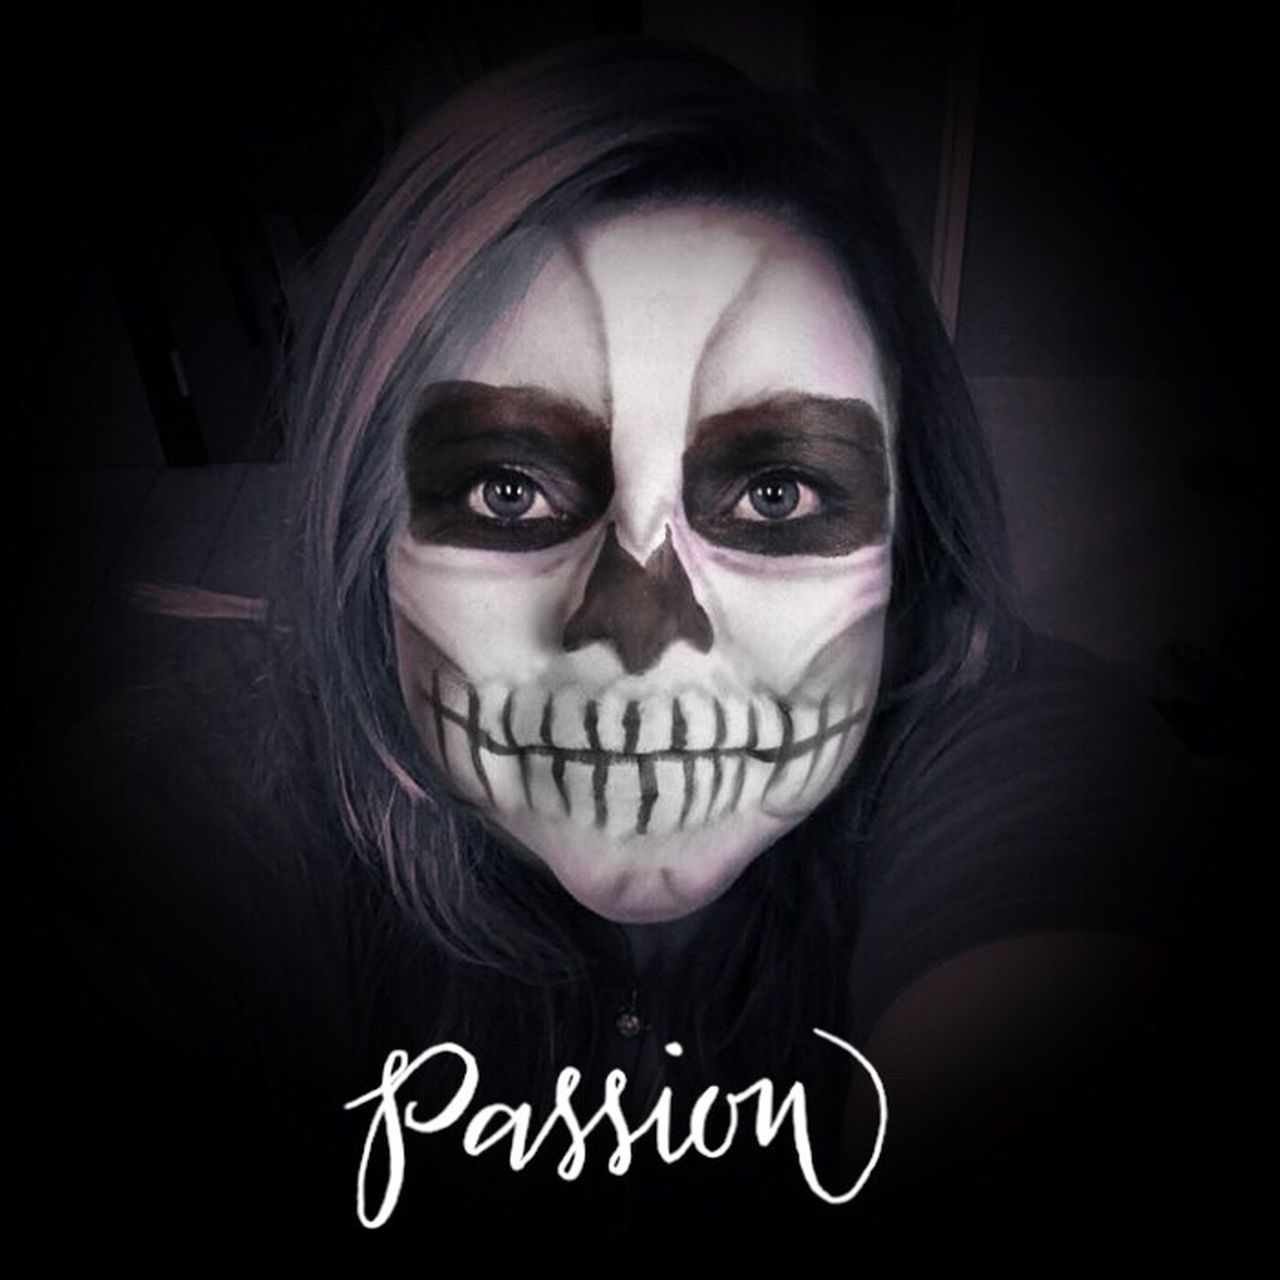 Spooky Halloween Horror Looking At Camera Bizarre Evil Women Monster - Fictional Character Human Skeleton Portrait Young Adult Adult From My Point Of View Lily May Collection Lilymayparker.blogspot.be